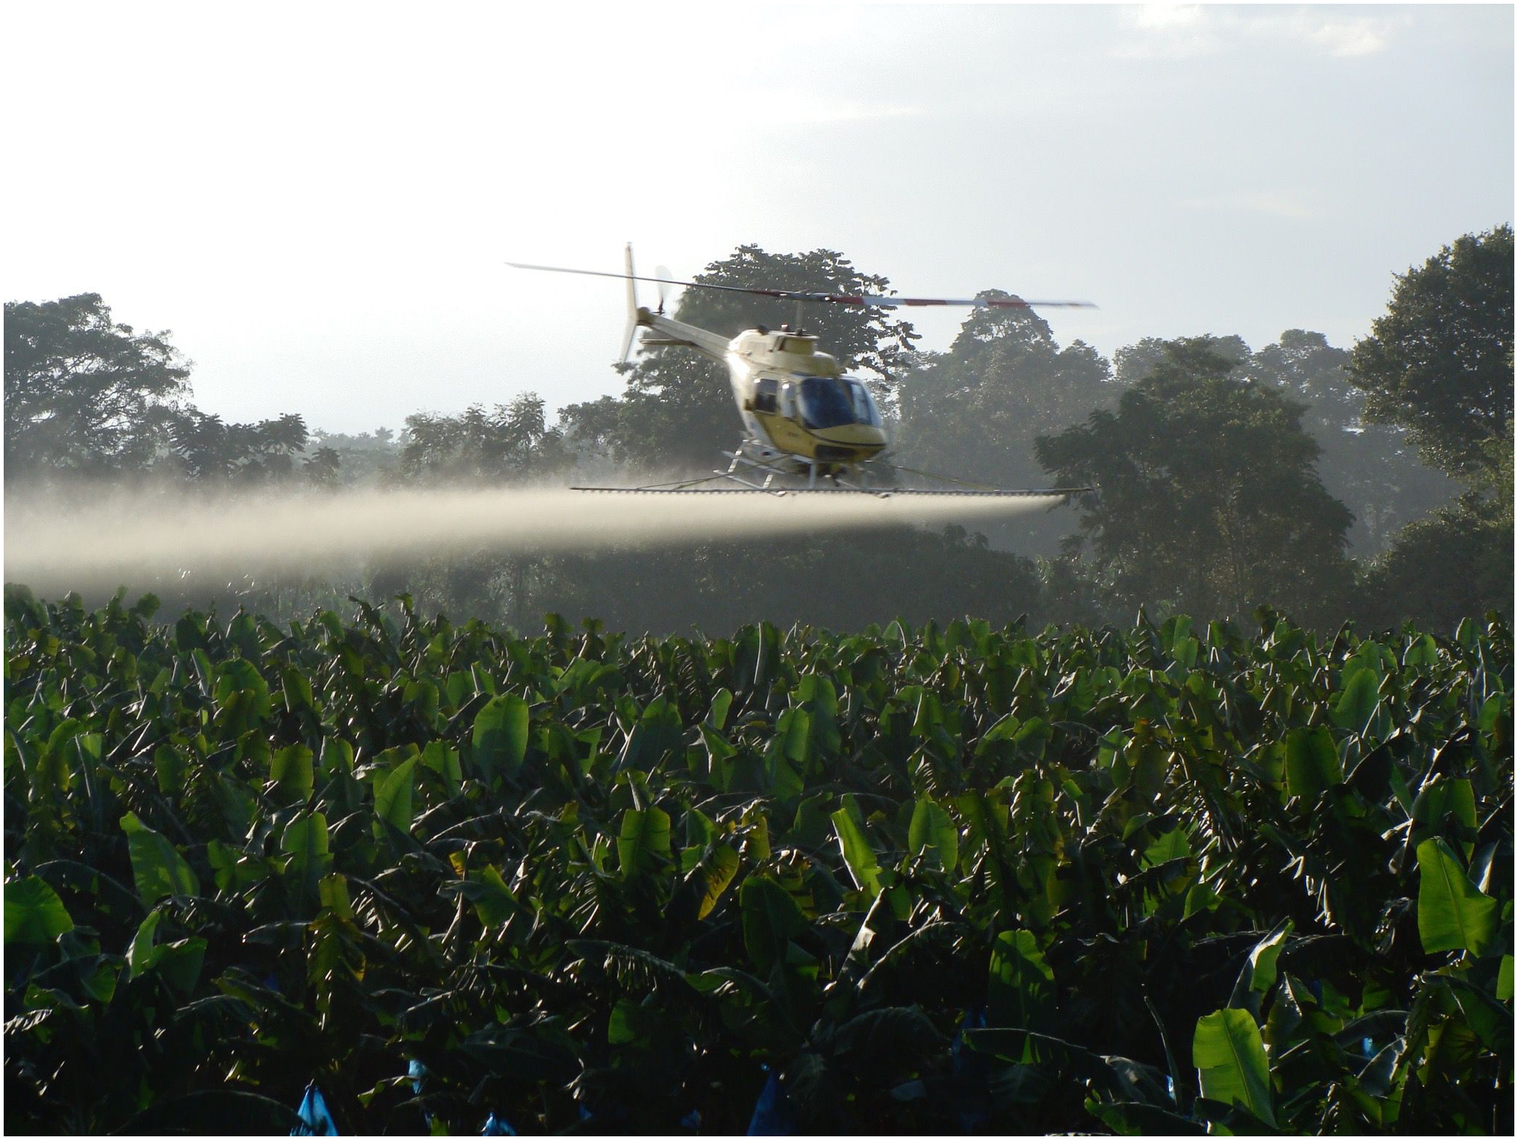 A spray helicopter completing a weekly fungicide application on a banana field affected by the Sigatoka disease complex in Costa Rica.